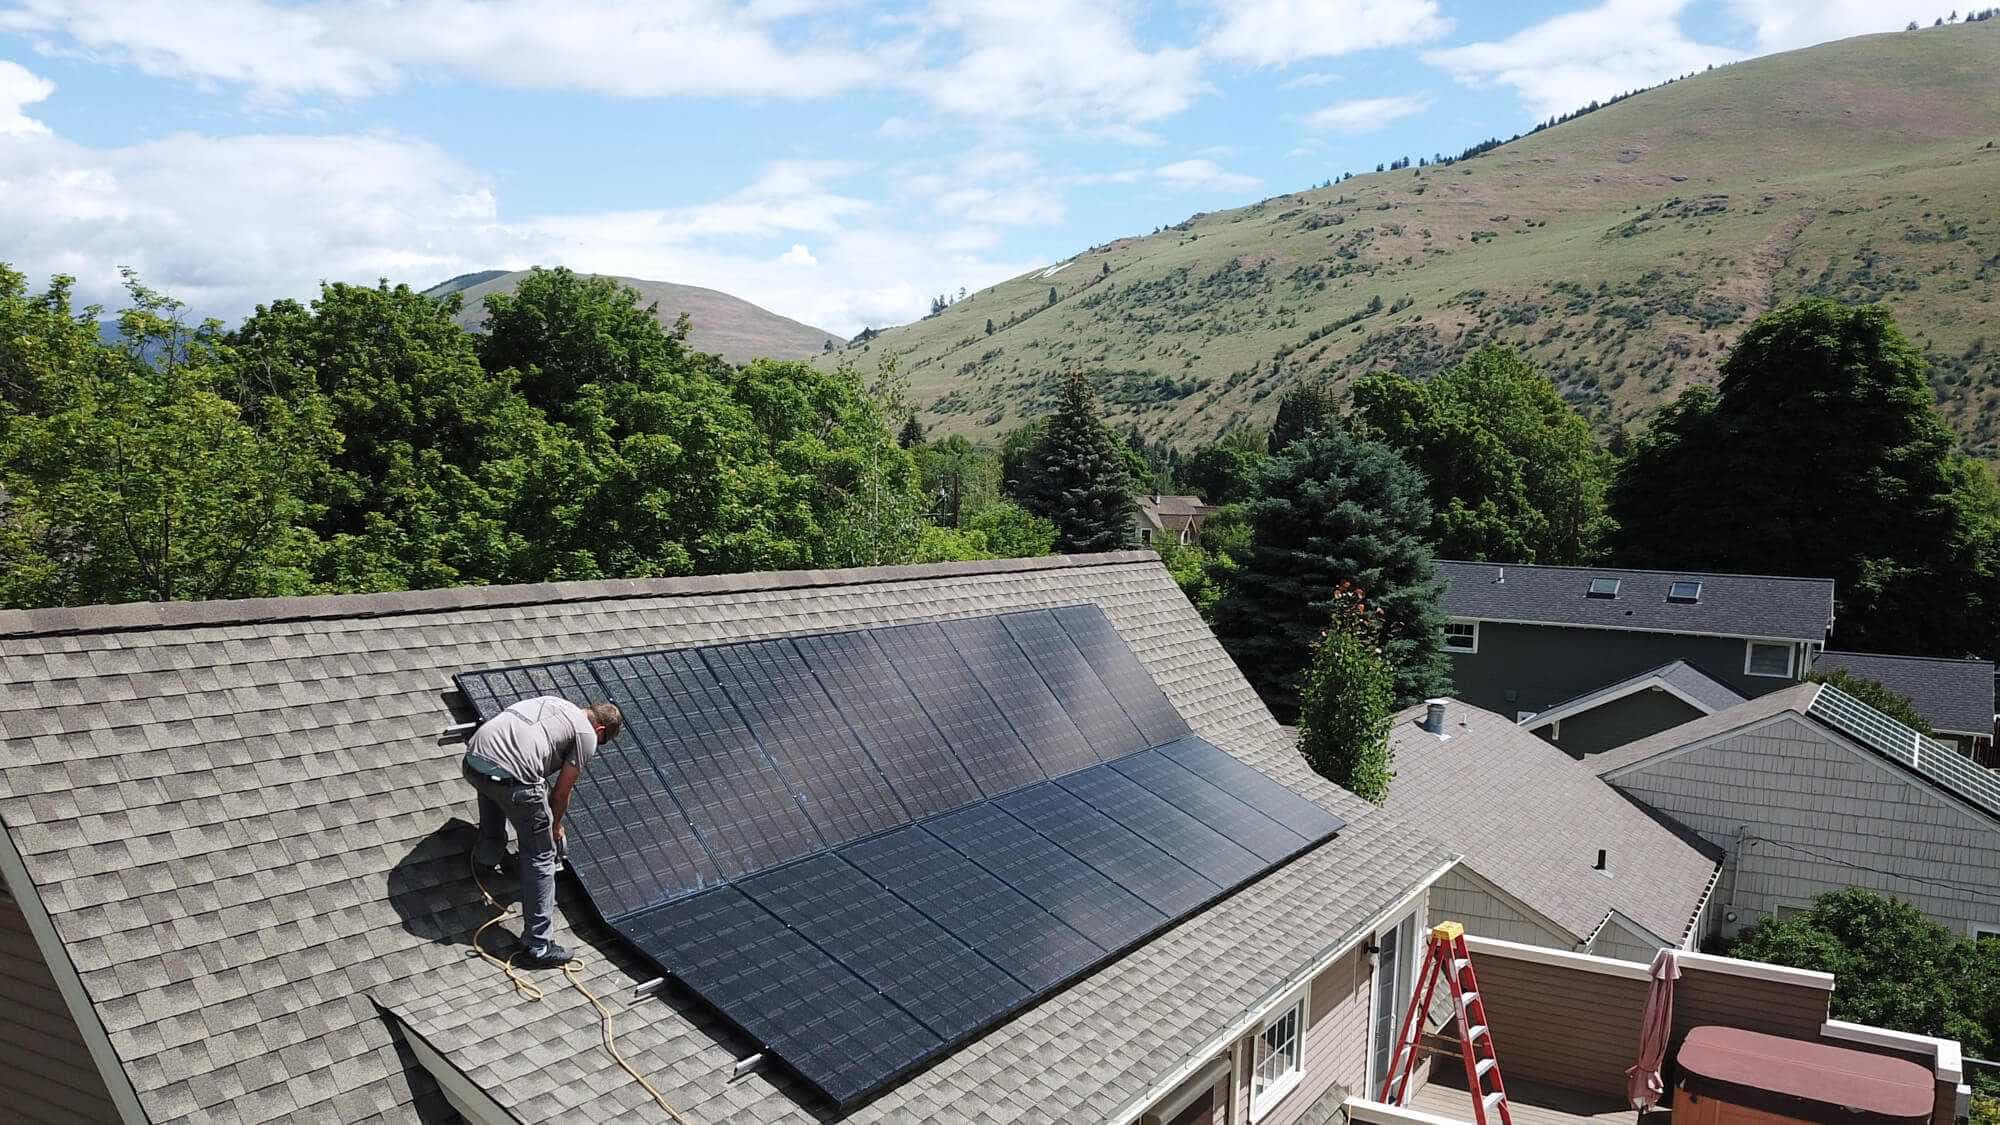 Solar panels being installed on roof